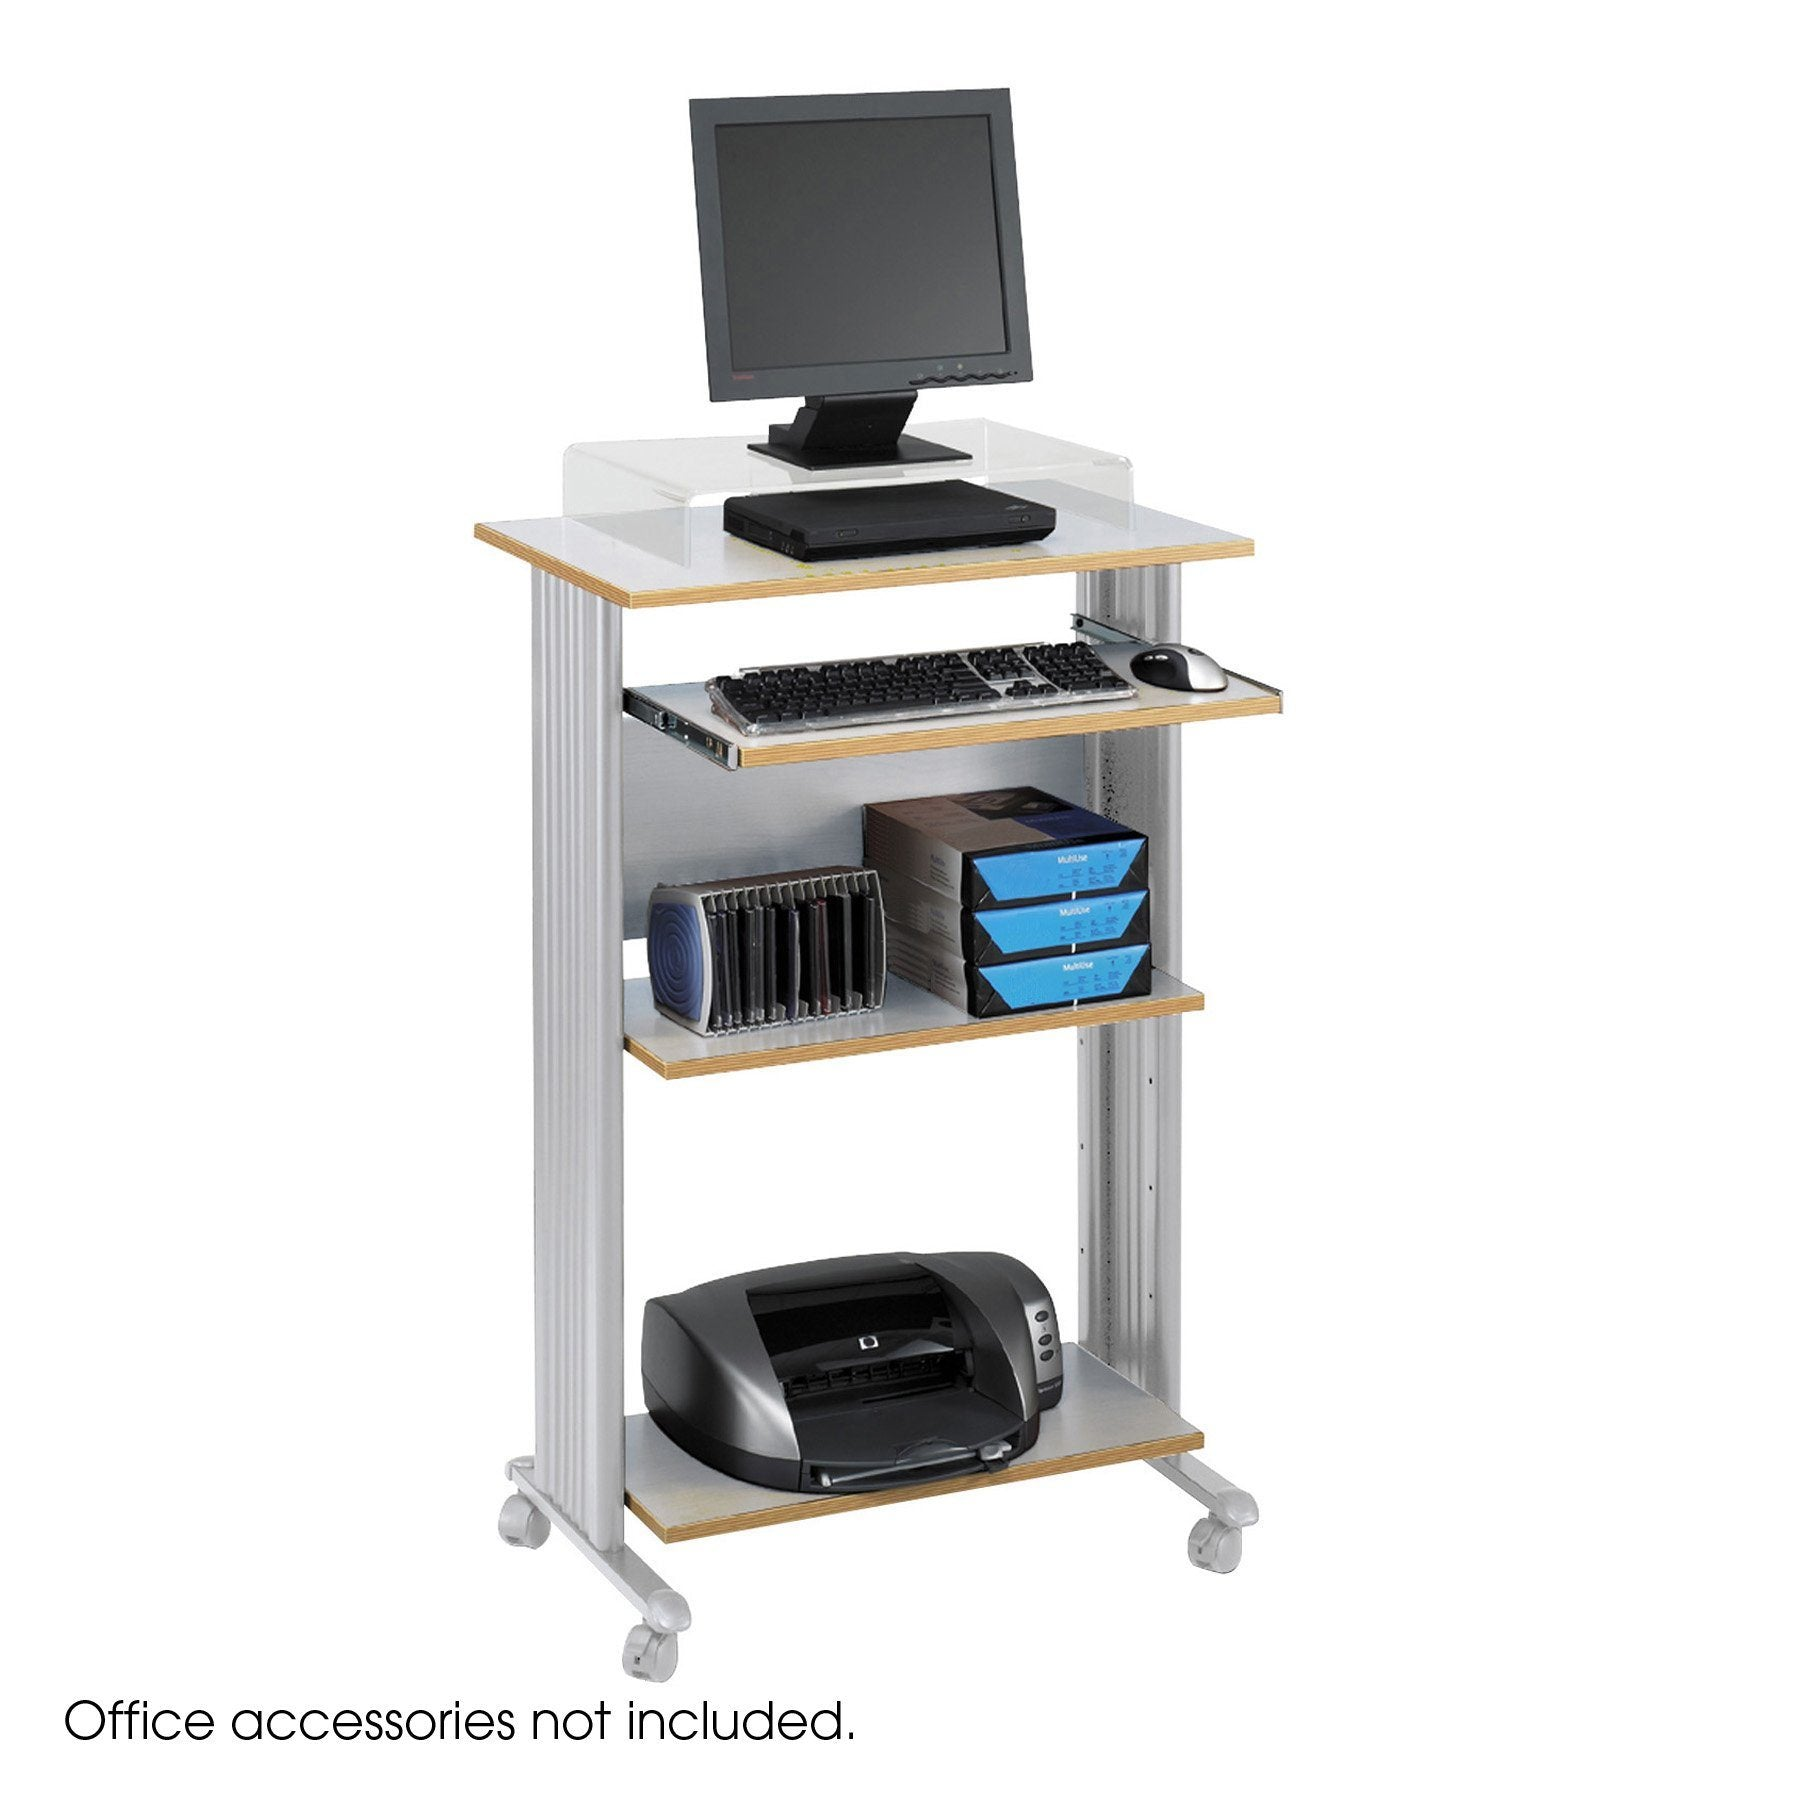 Muv Stand Up Desk By Safco From Fitneff Canada